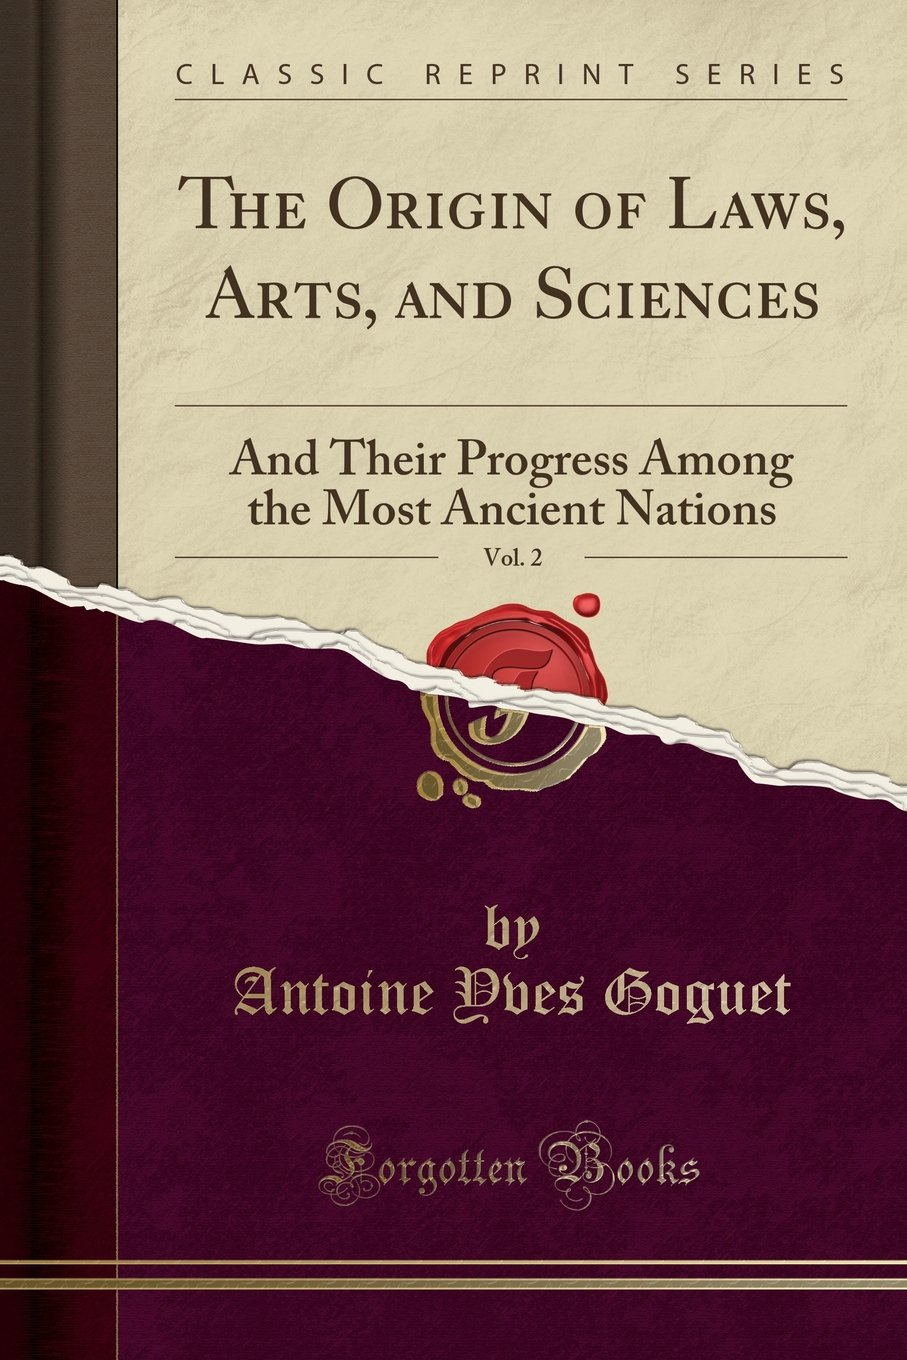 The Origin of Laws, Arts, and Sciences, Vol. 2: And Their Progress Among the Most Ancient Nations (Classic Reprint) PDF